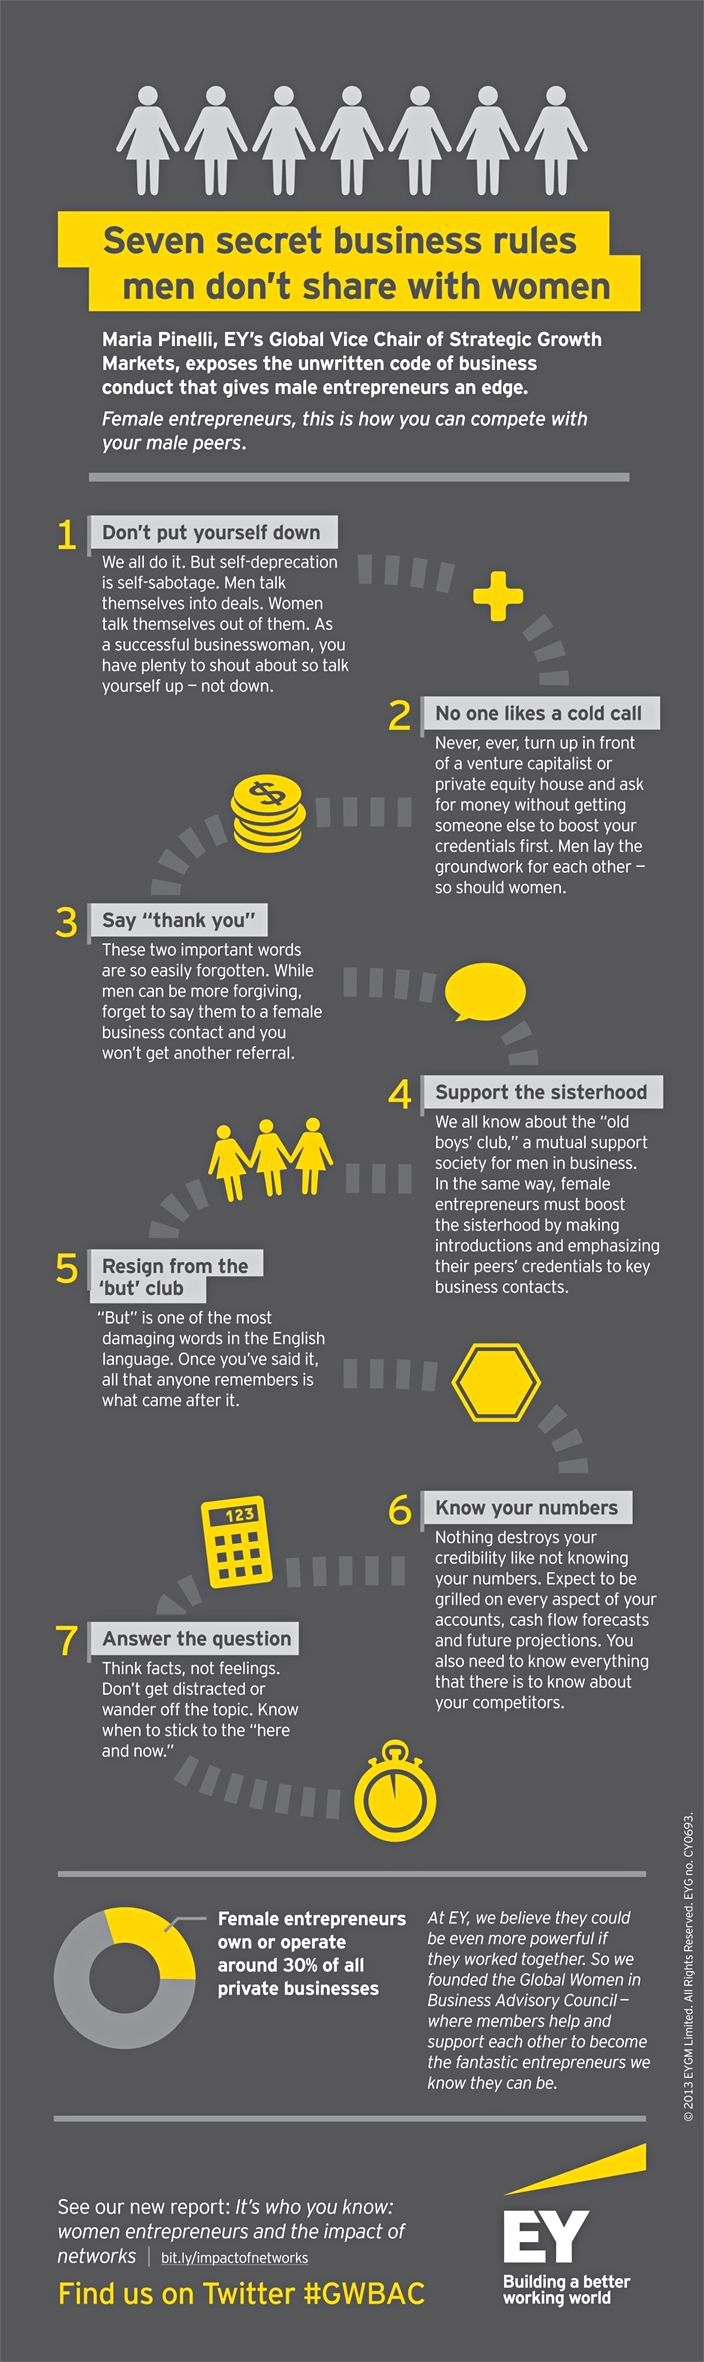 EY infographic 7 Secret Business Rules Men Don't Share With Women